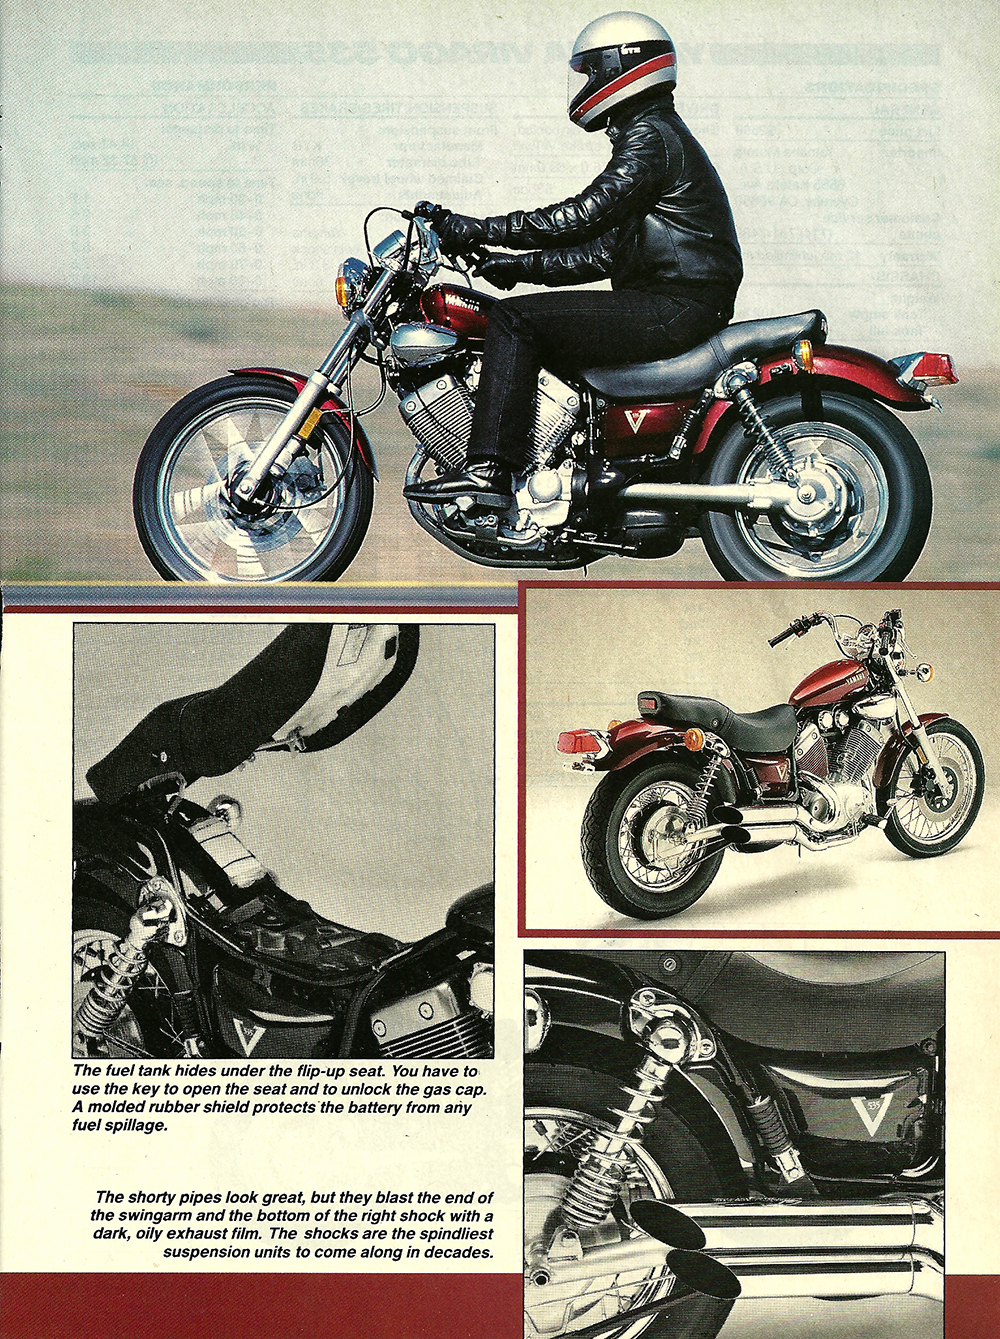 1987 Yamaha Virago 535 road test 04.jpg